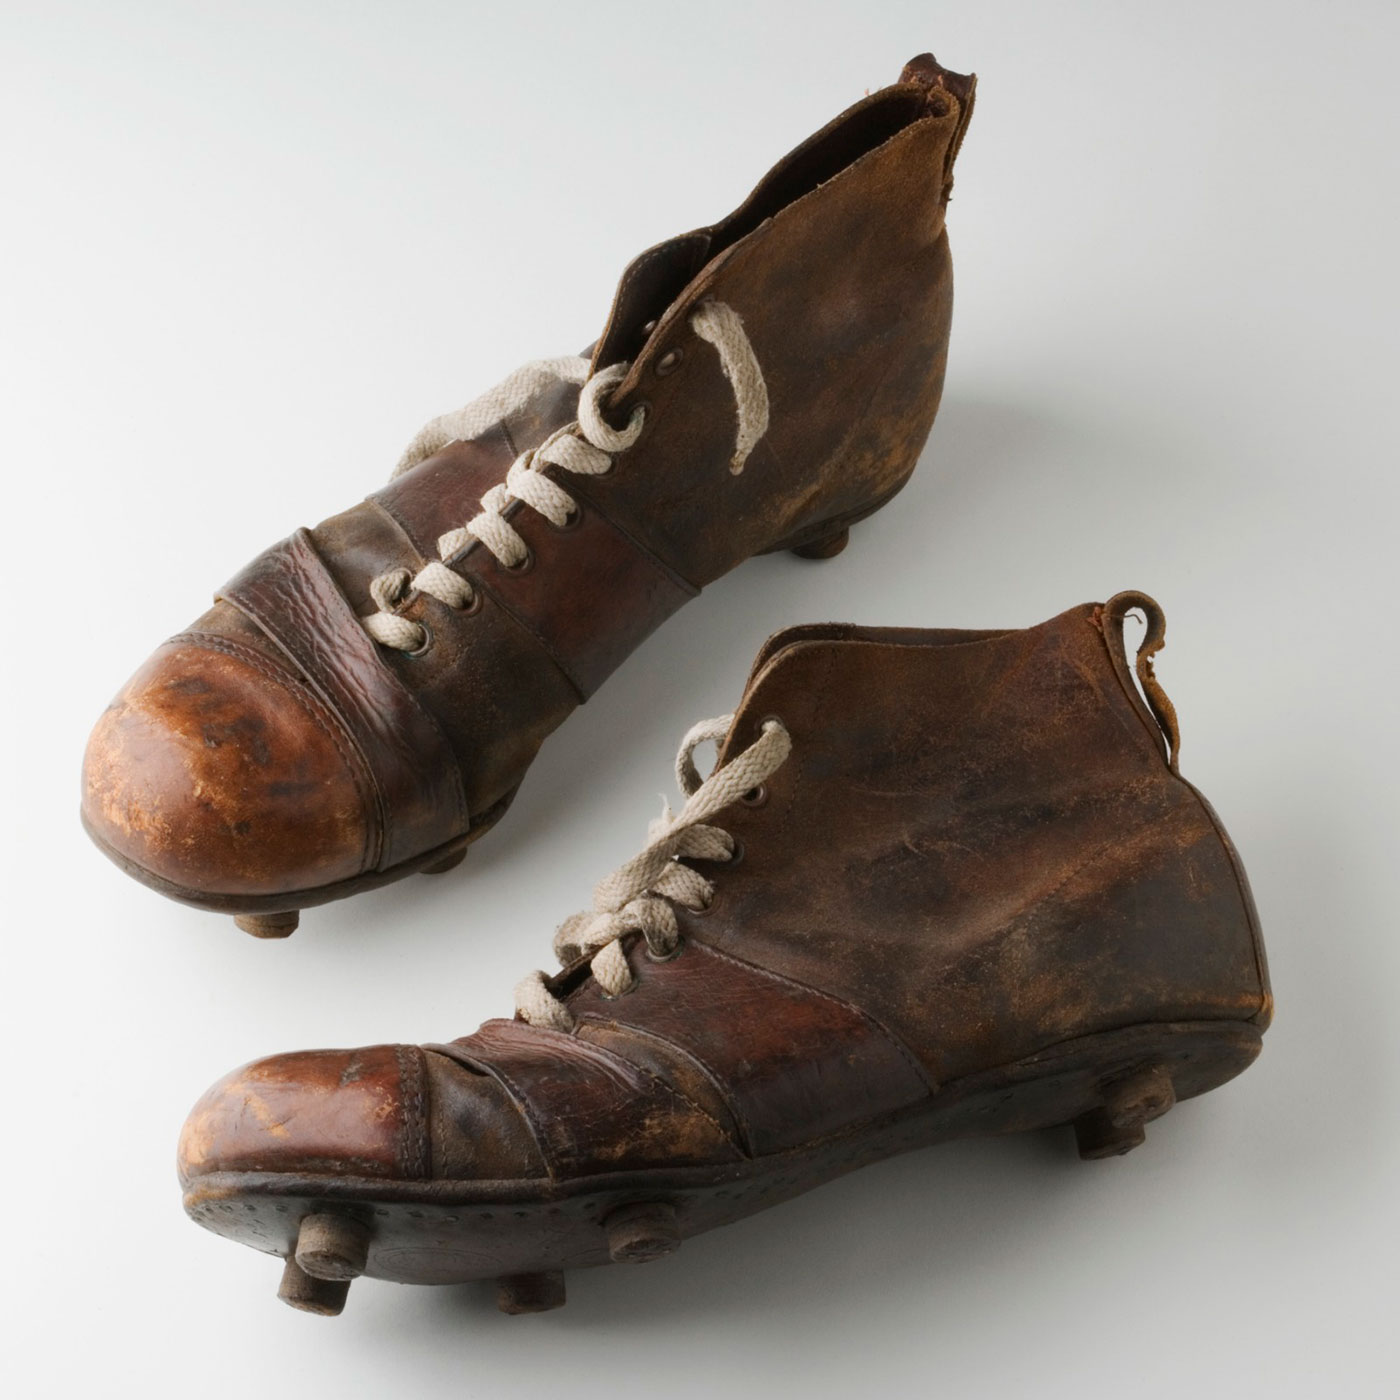 A pair of leather, high-ankle football boots. - click to view larger image